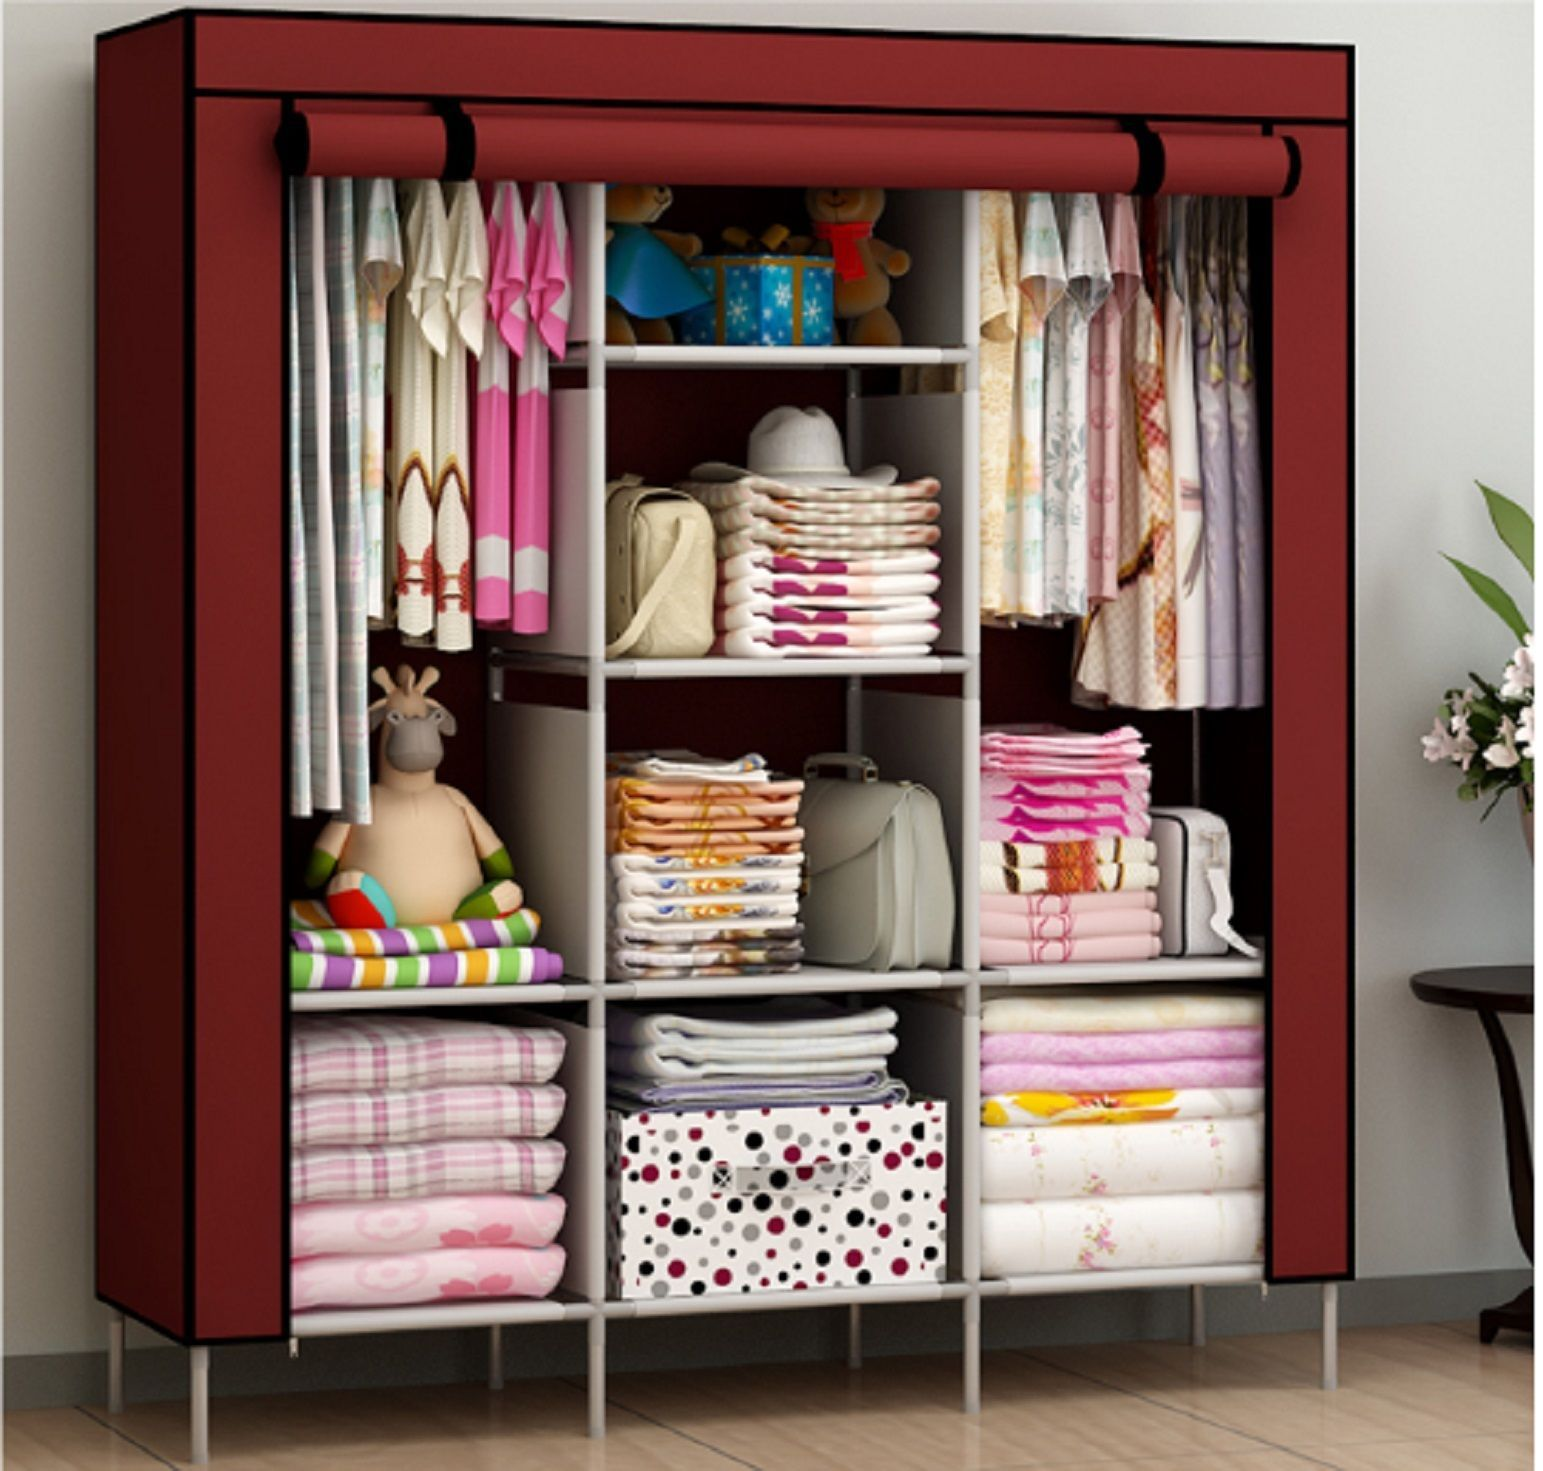 Details about Wardrobe Storage Clothes Organizer Closet Cabinet ...